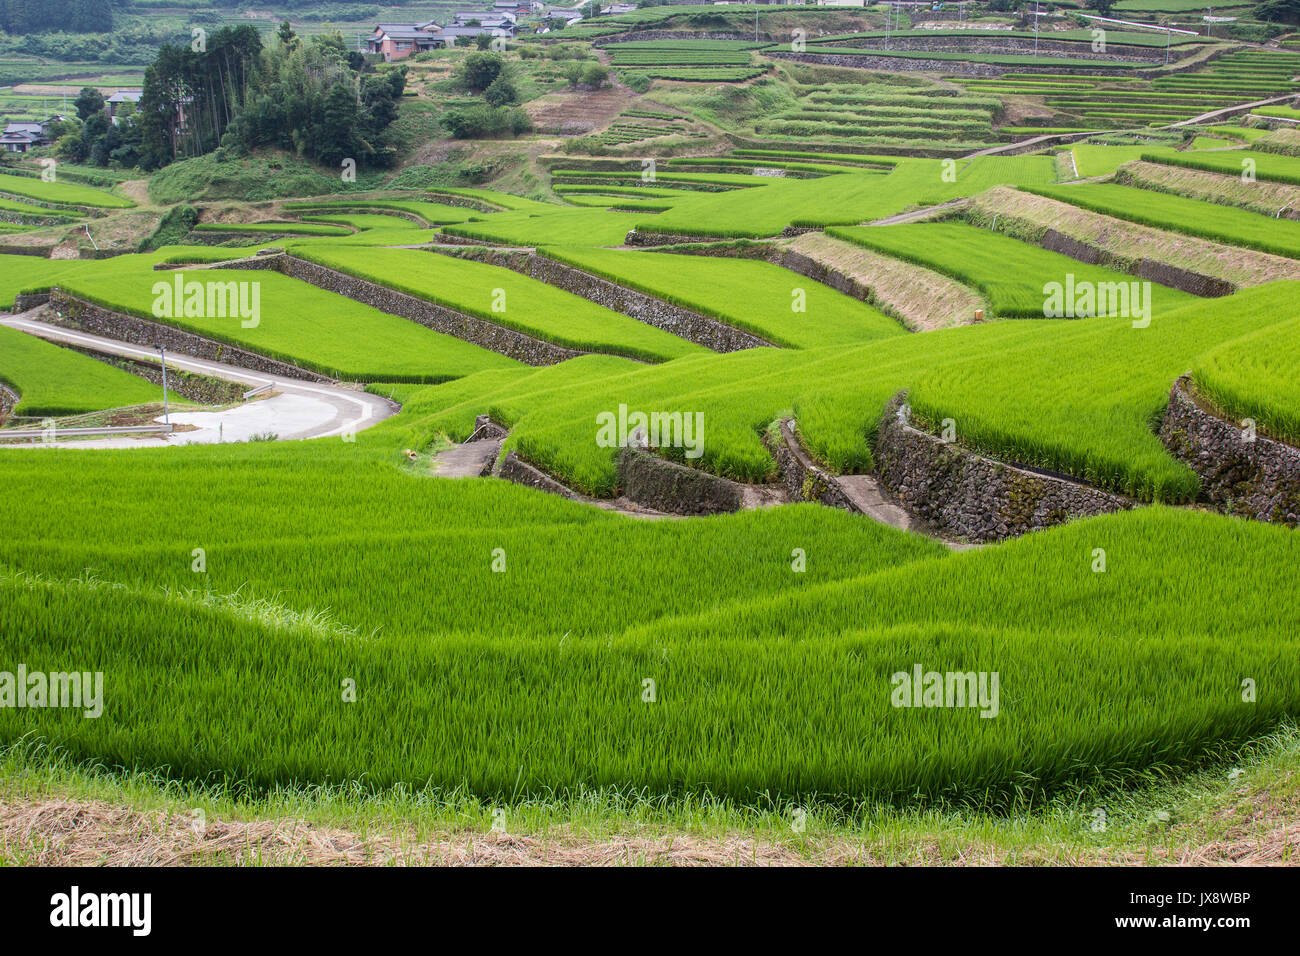 Onigi Hasami Rice Terraces - Curving their way up the mountain slopes, the terraced rice fields at Onigi Hasami Tanada are the result of local farmers - Stock Image